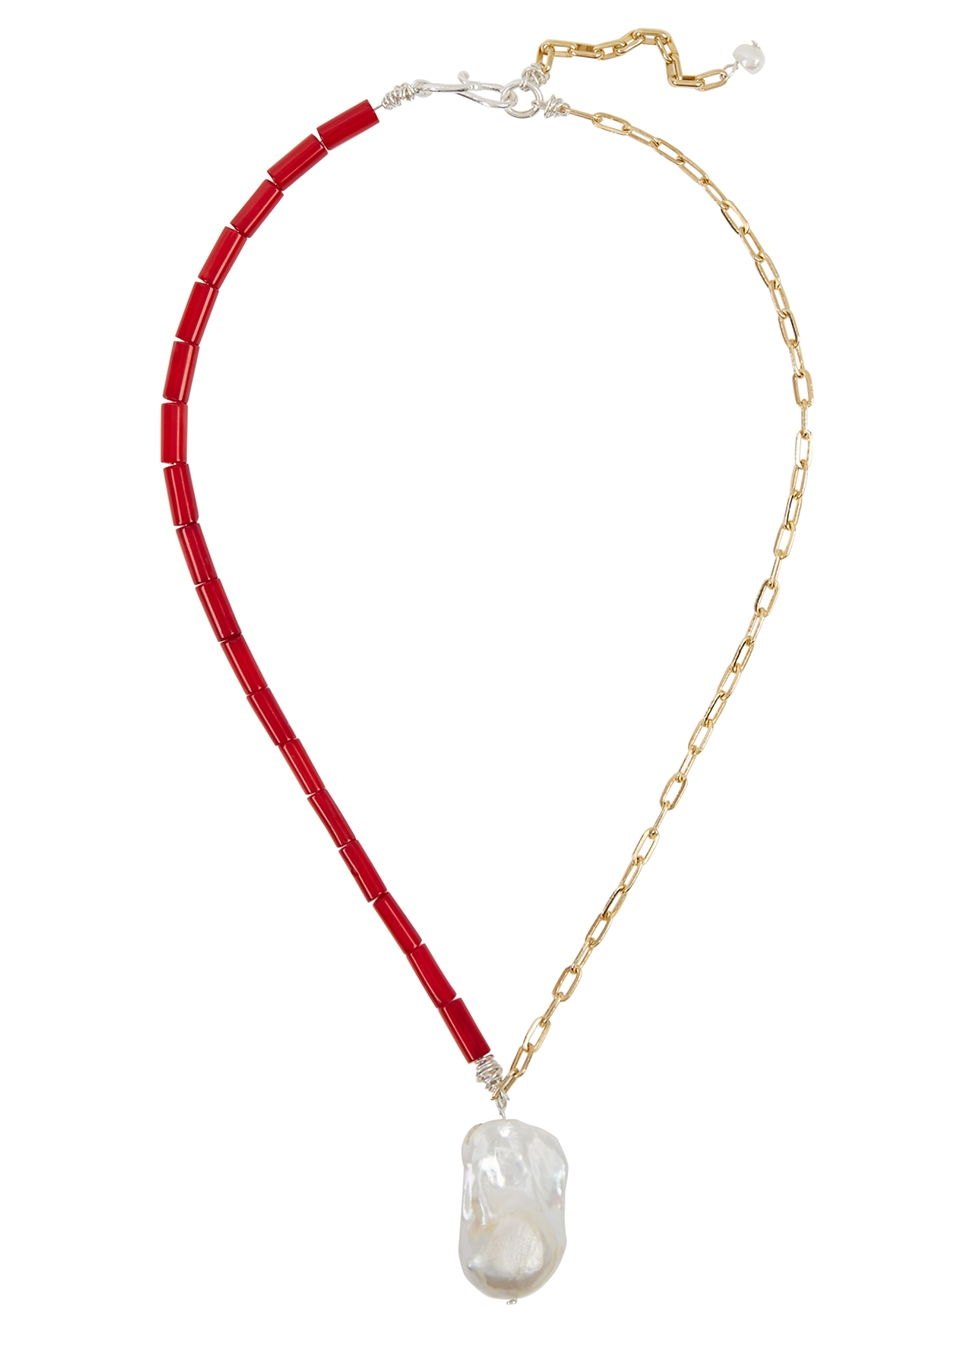 Voyage 18kt gold-plated necklace - WALD Berlin